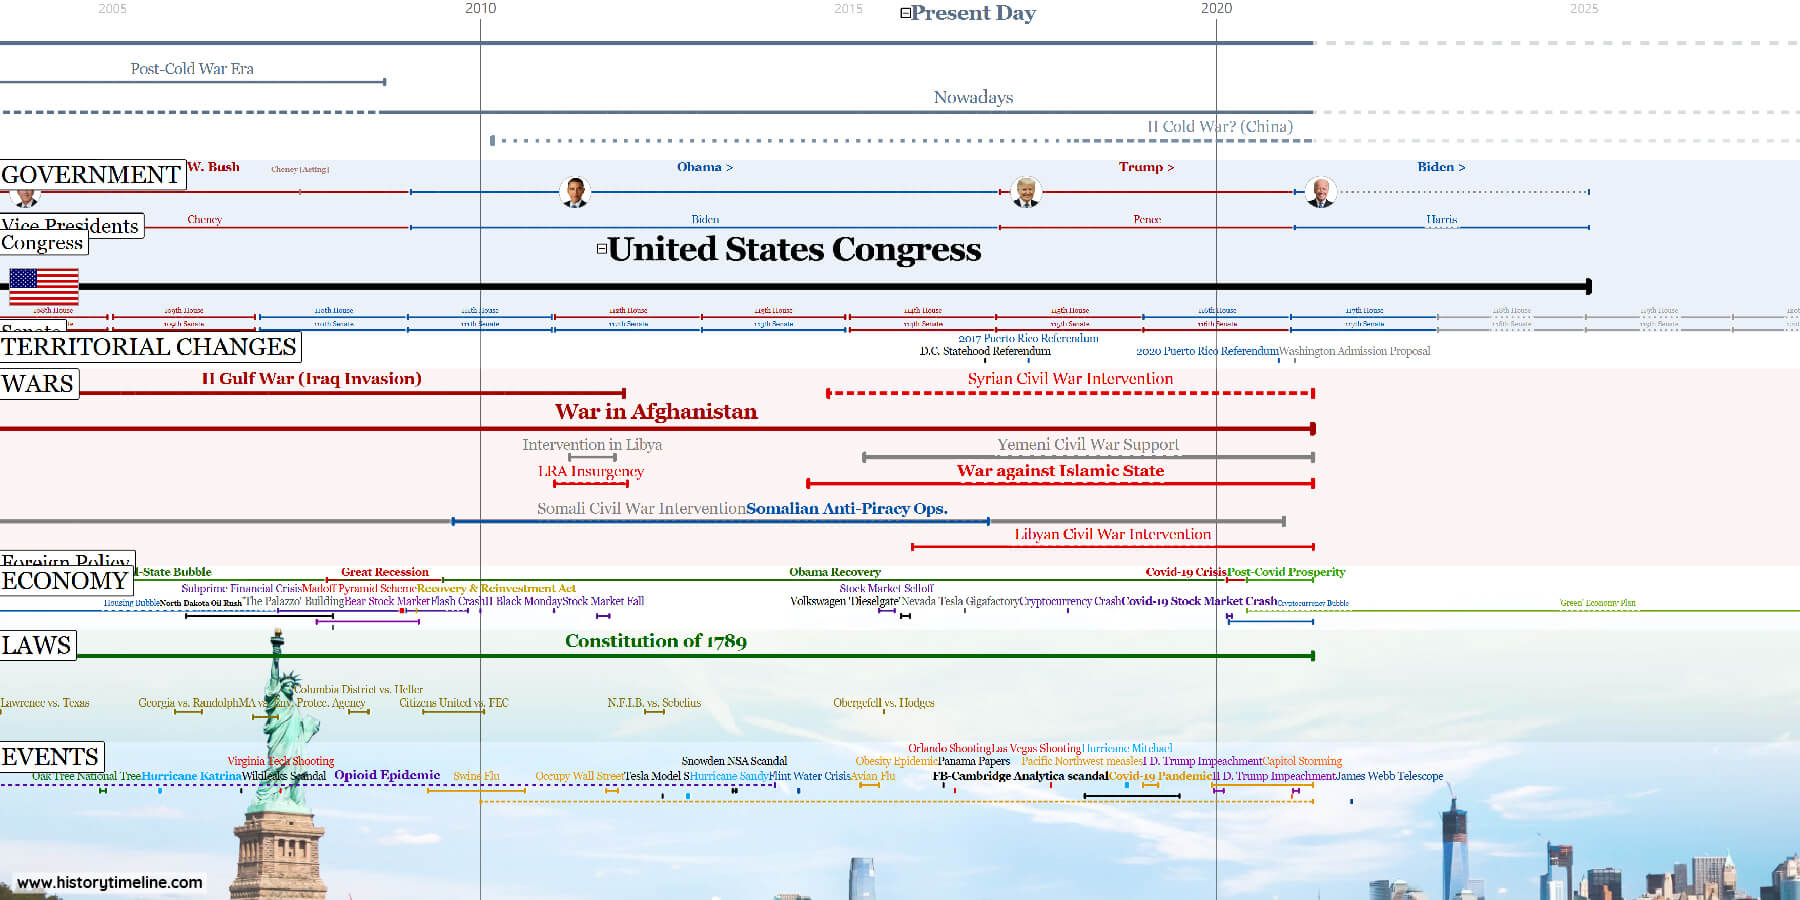 American History Timeline with periods, presidents, wars, economy, law and other events